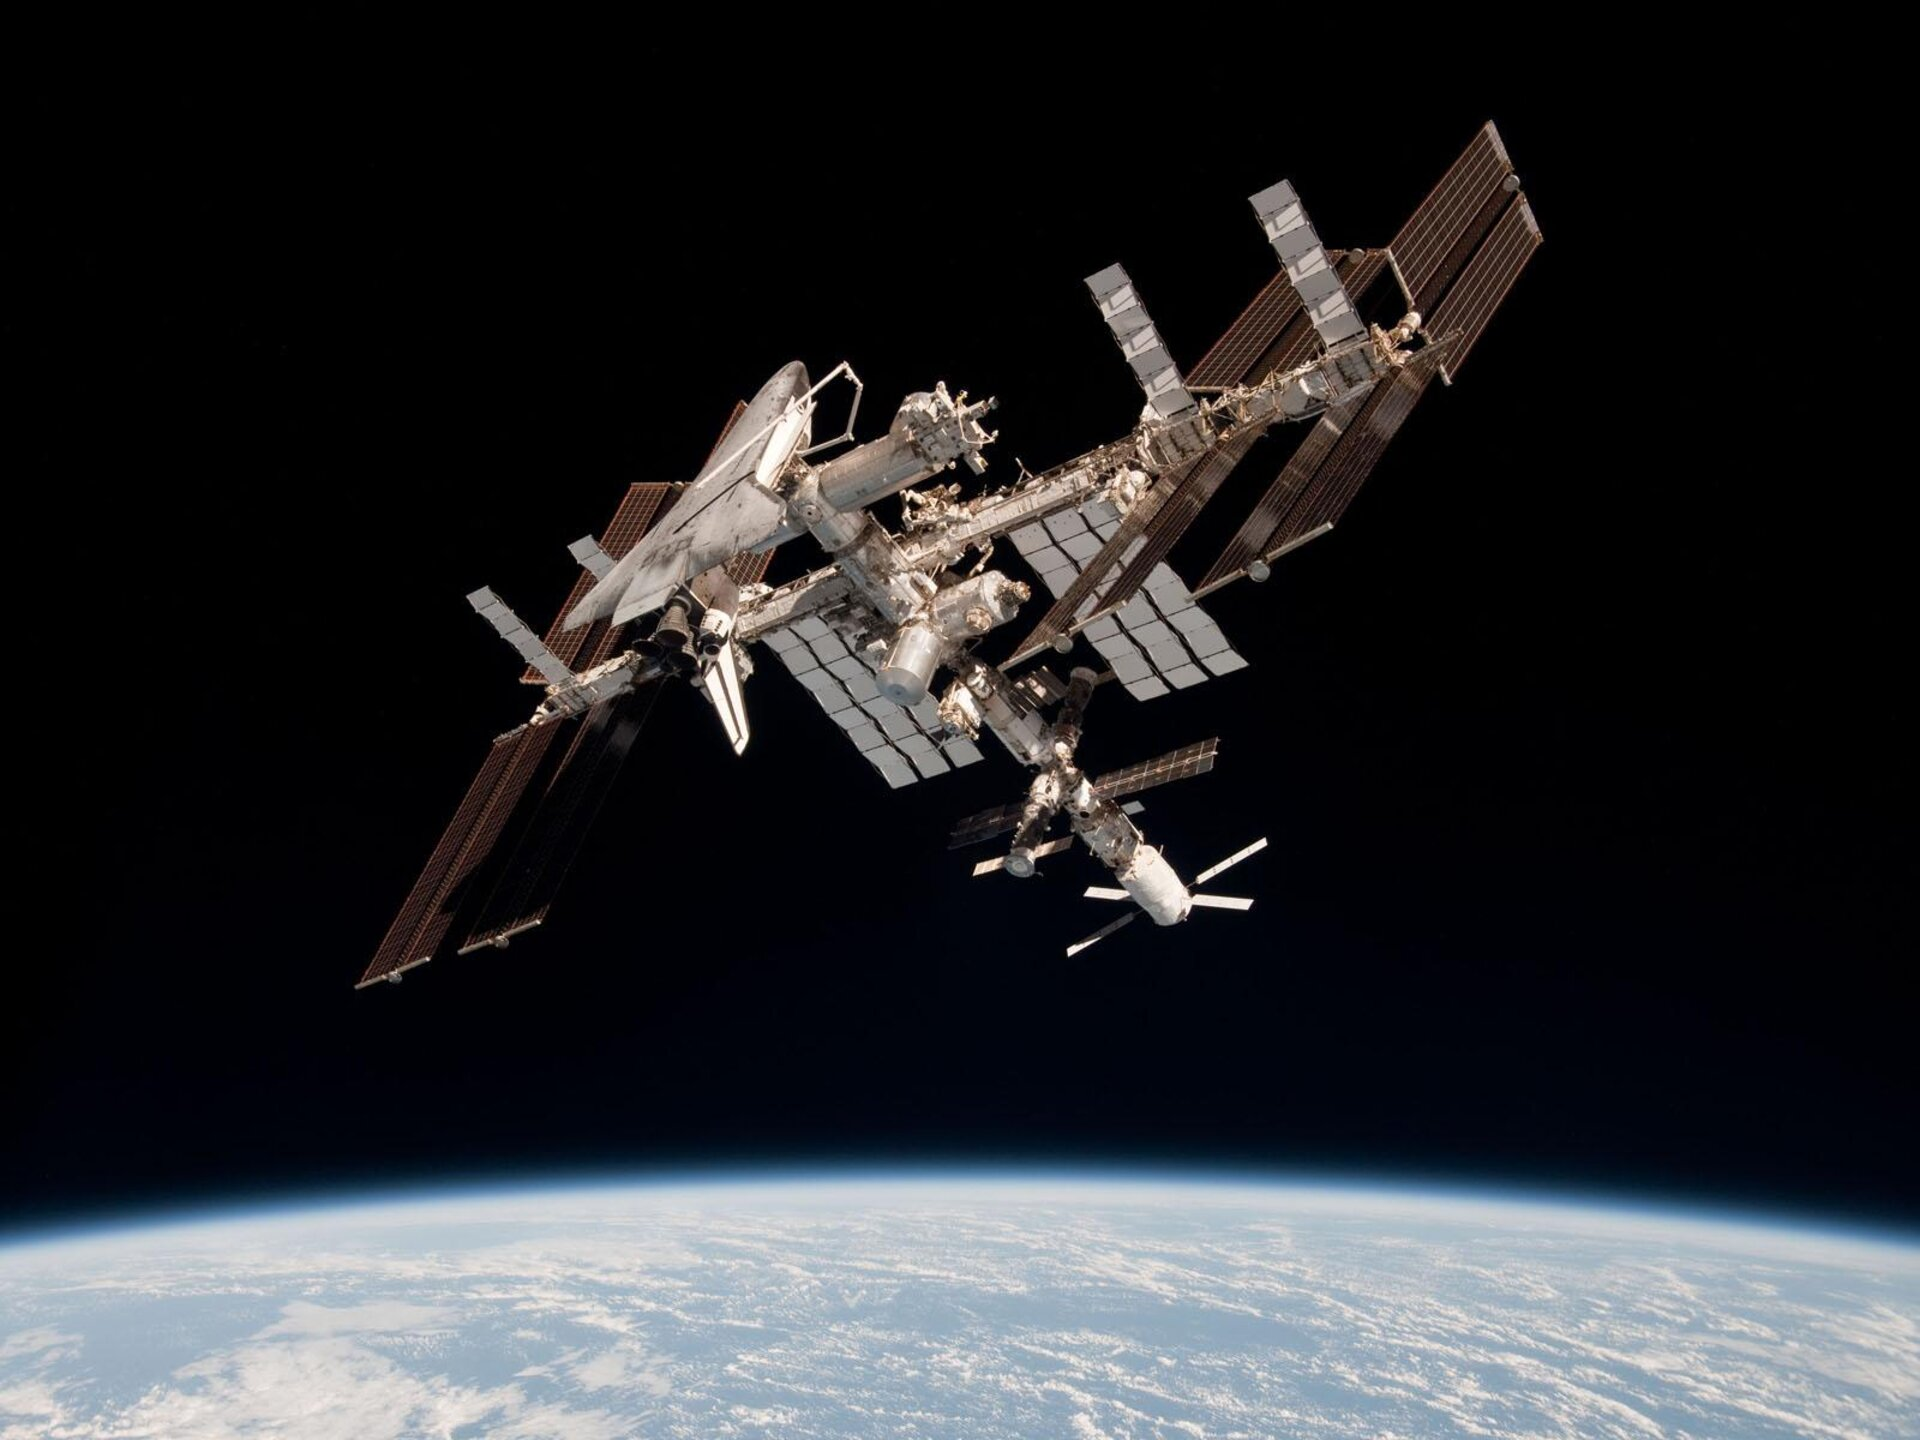 The International Space Station with ATV-2 and <i>Endeavour</i>